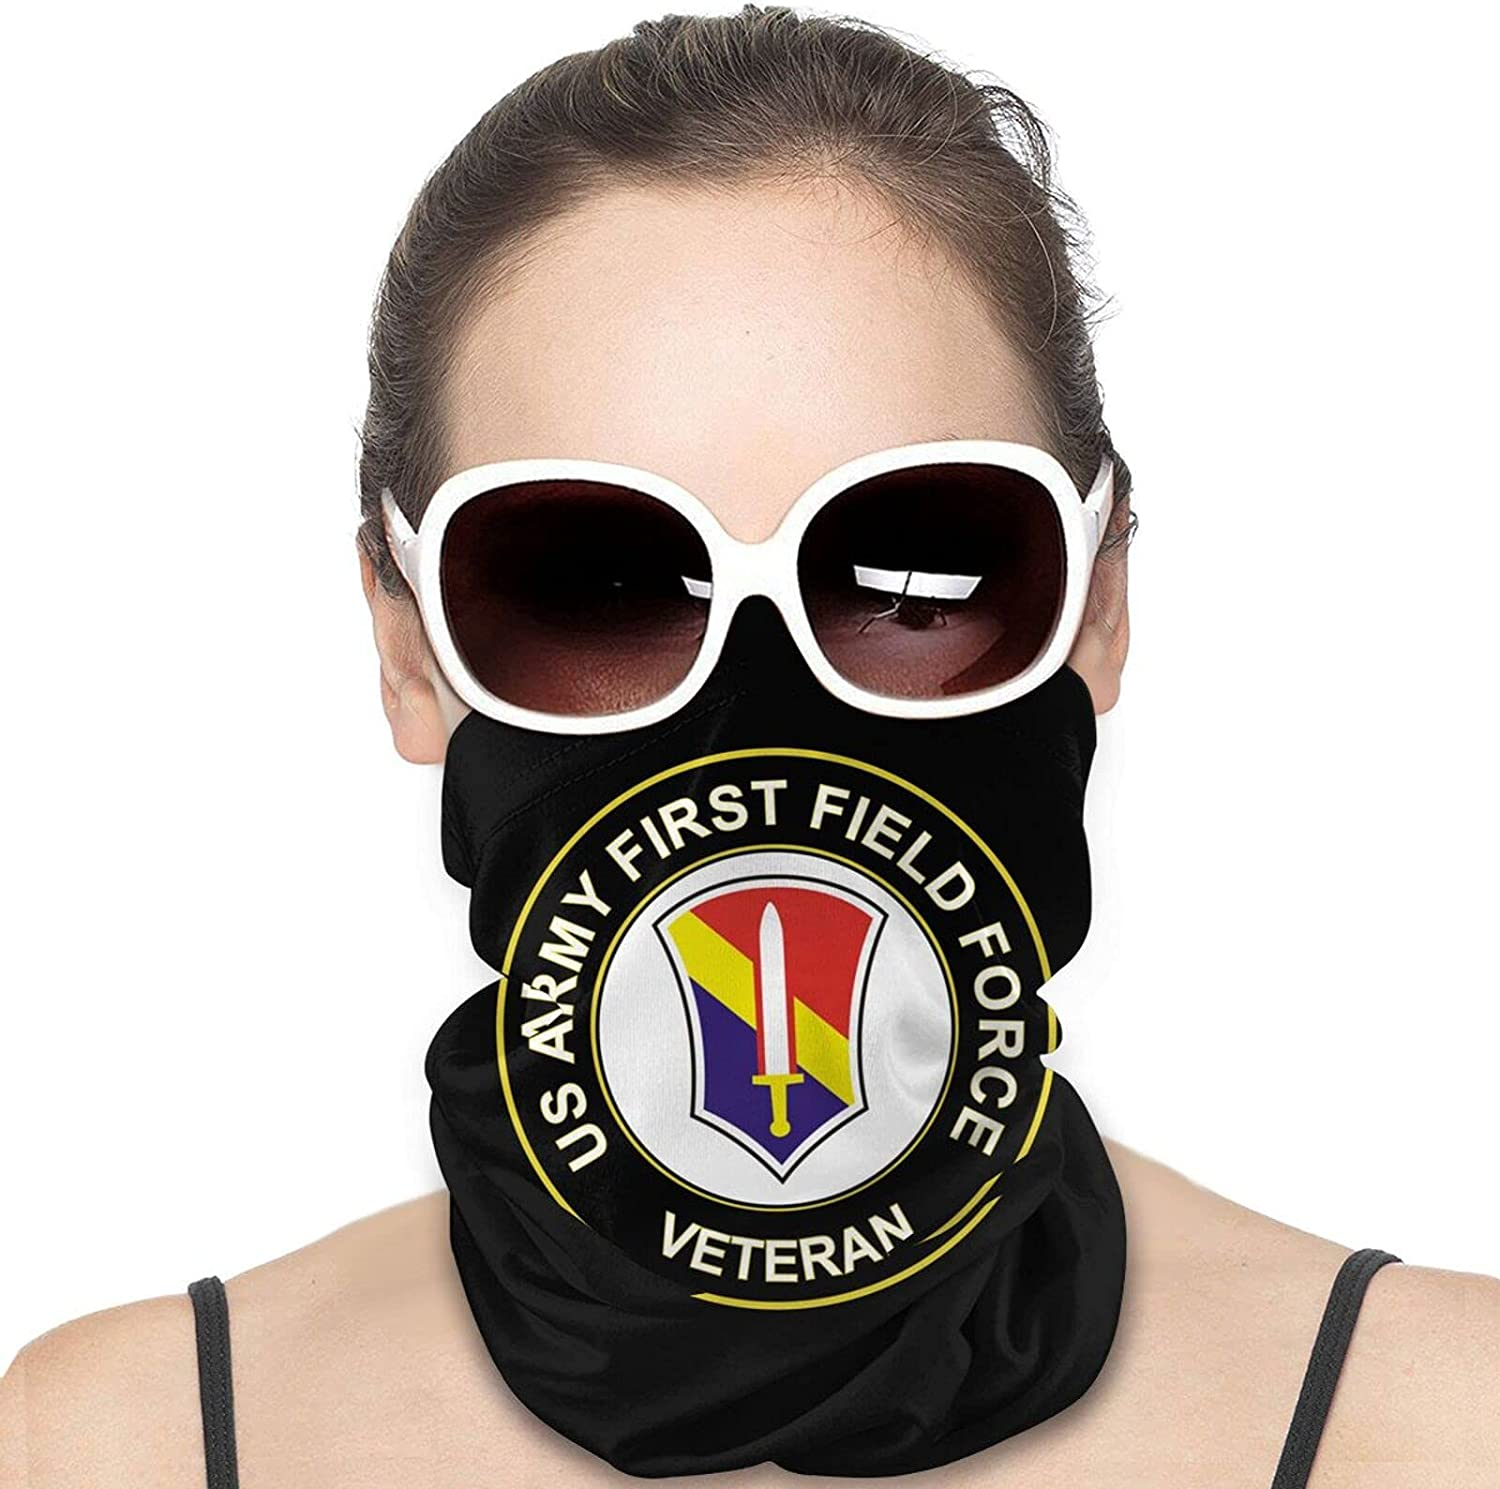 U.S. Army First Field Force Veteran Round Neck Gaiter Bandnas Face Cover Uv Protection Prevent bask in Ice Scarf Headbands Perfect for Motorcycle Cycling Running Festival Raves Outdoors